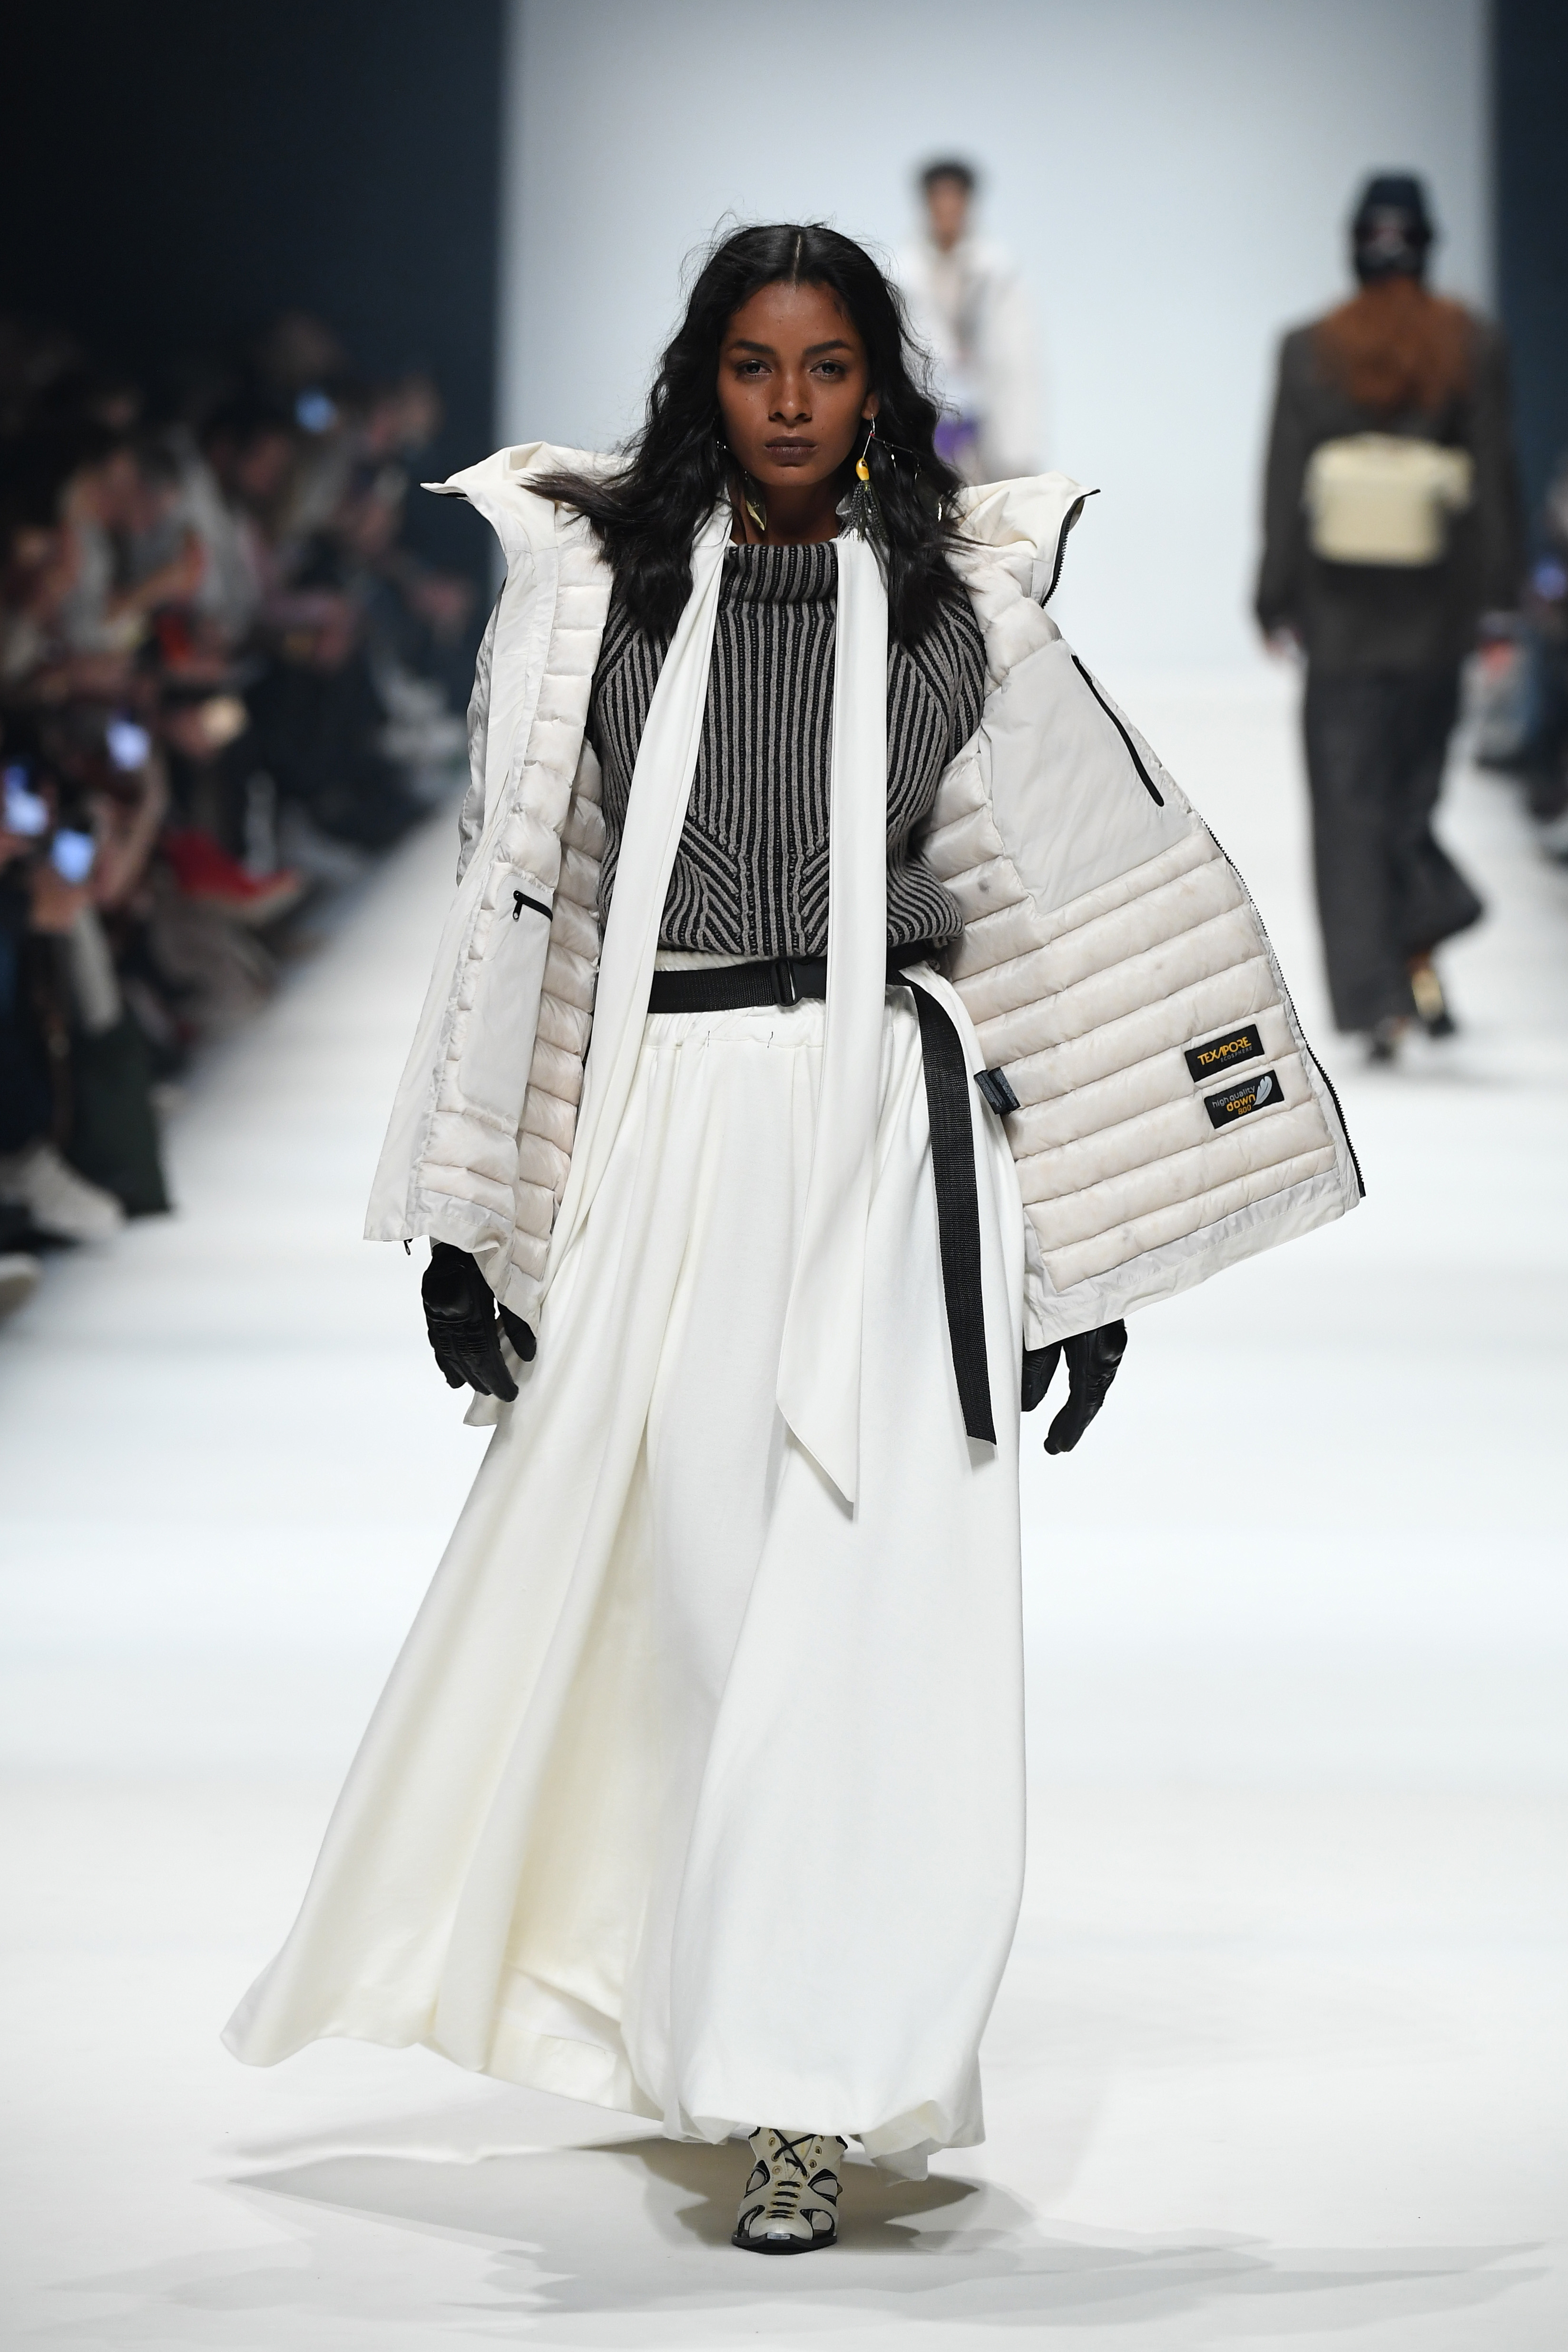 BERLIN, GERMANY - JANUARY 14: A model wearing a jacket by Wolfskin Tech Lab, shirt by Miomartha, pullover by Lanius, skirt by Hi On Life, gloves by Biker-Zone, socks by Swedish Stockings and shoes by Balluta walks the runway at the Neonyt show during Berlin Fashion Week Autumn/Winter 2020 at Kraftwerk Mitte on January 14, 2020 in Berlin, Germany. (Photo by John Phillips/Getty Images for MBFW)